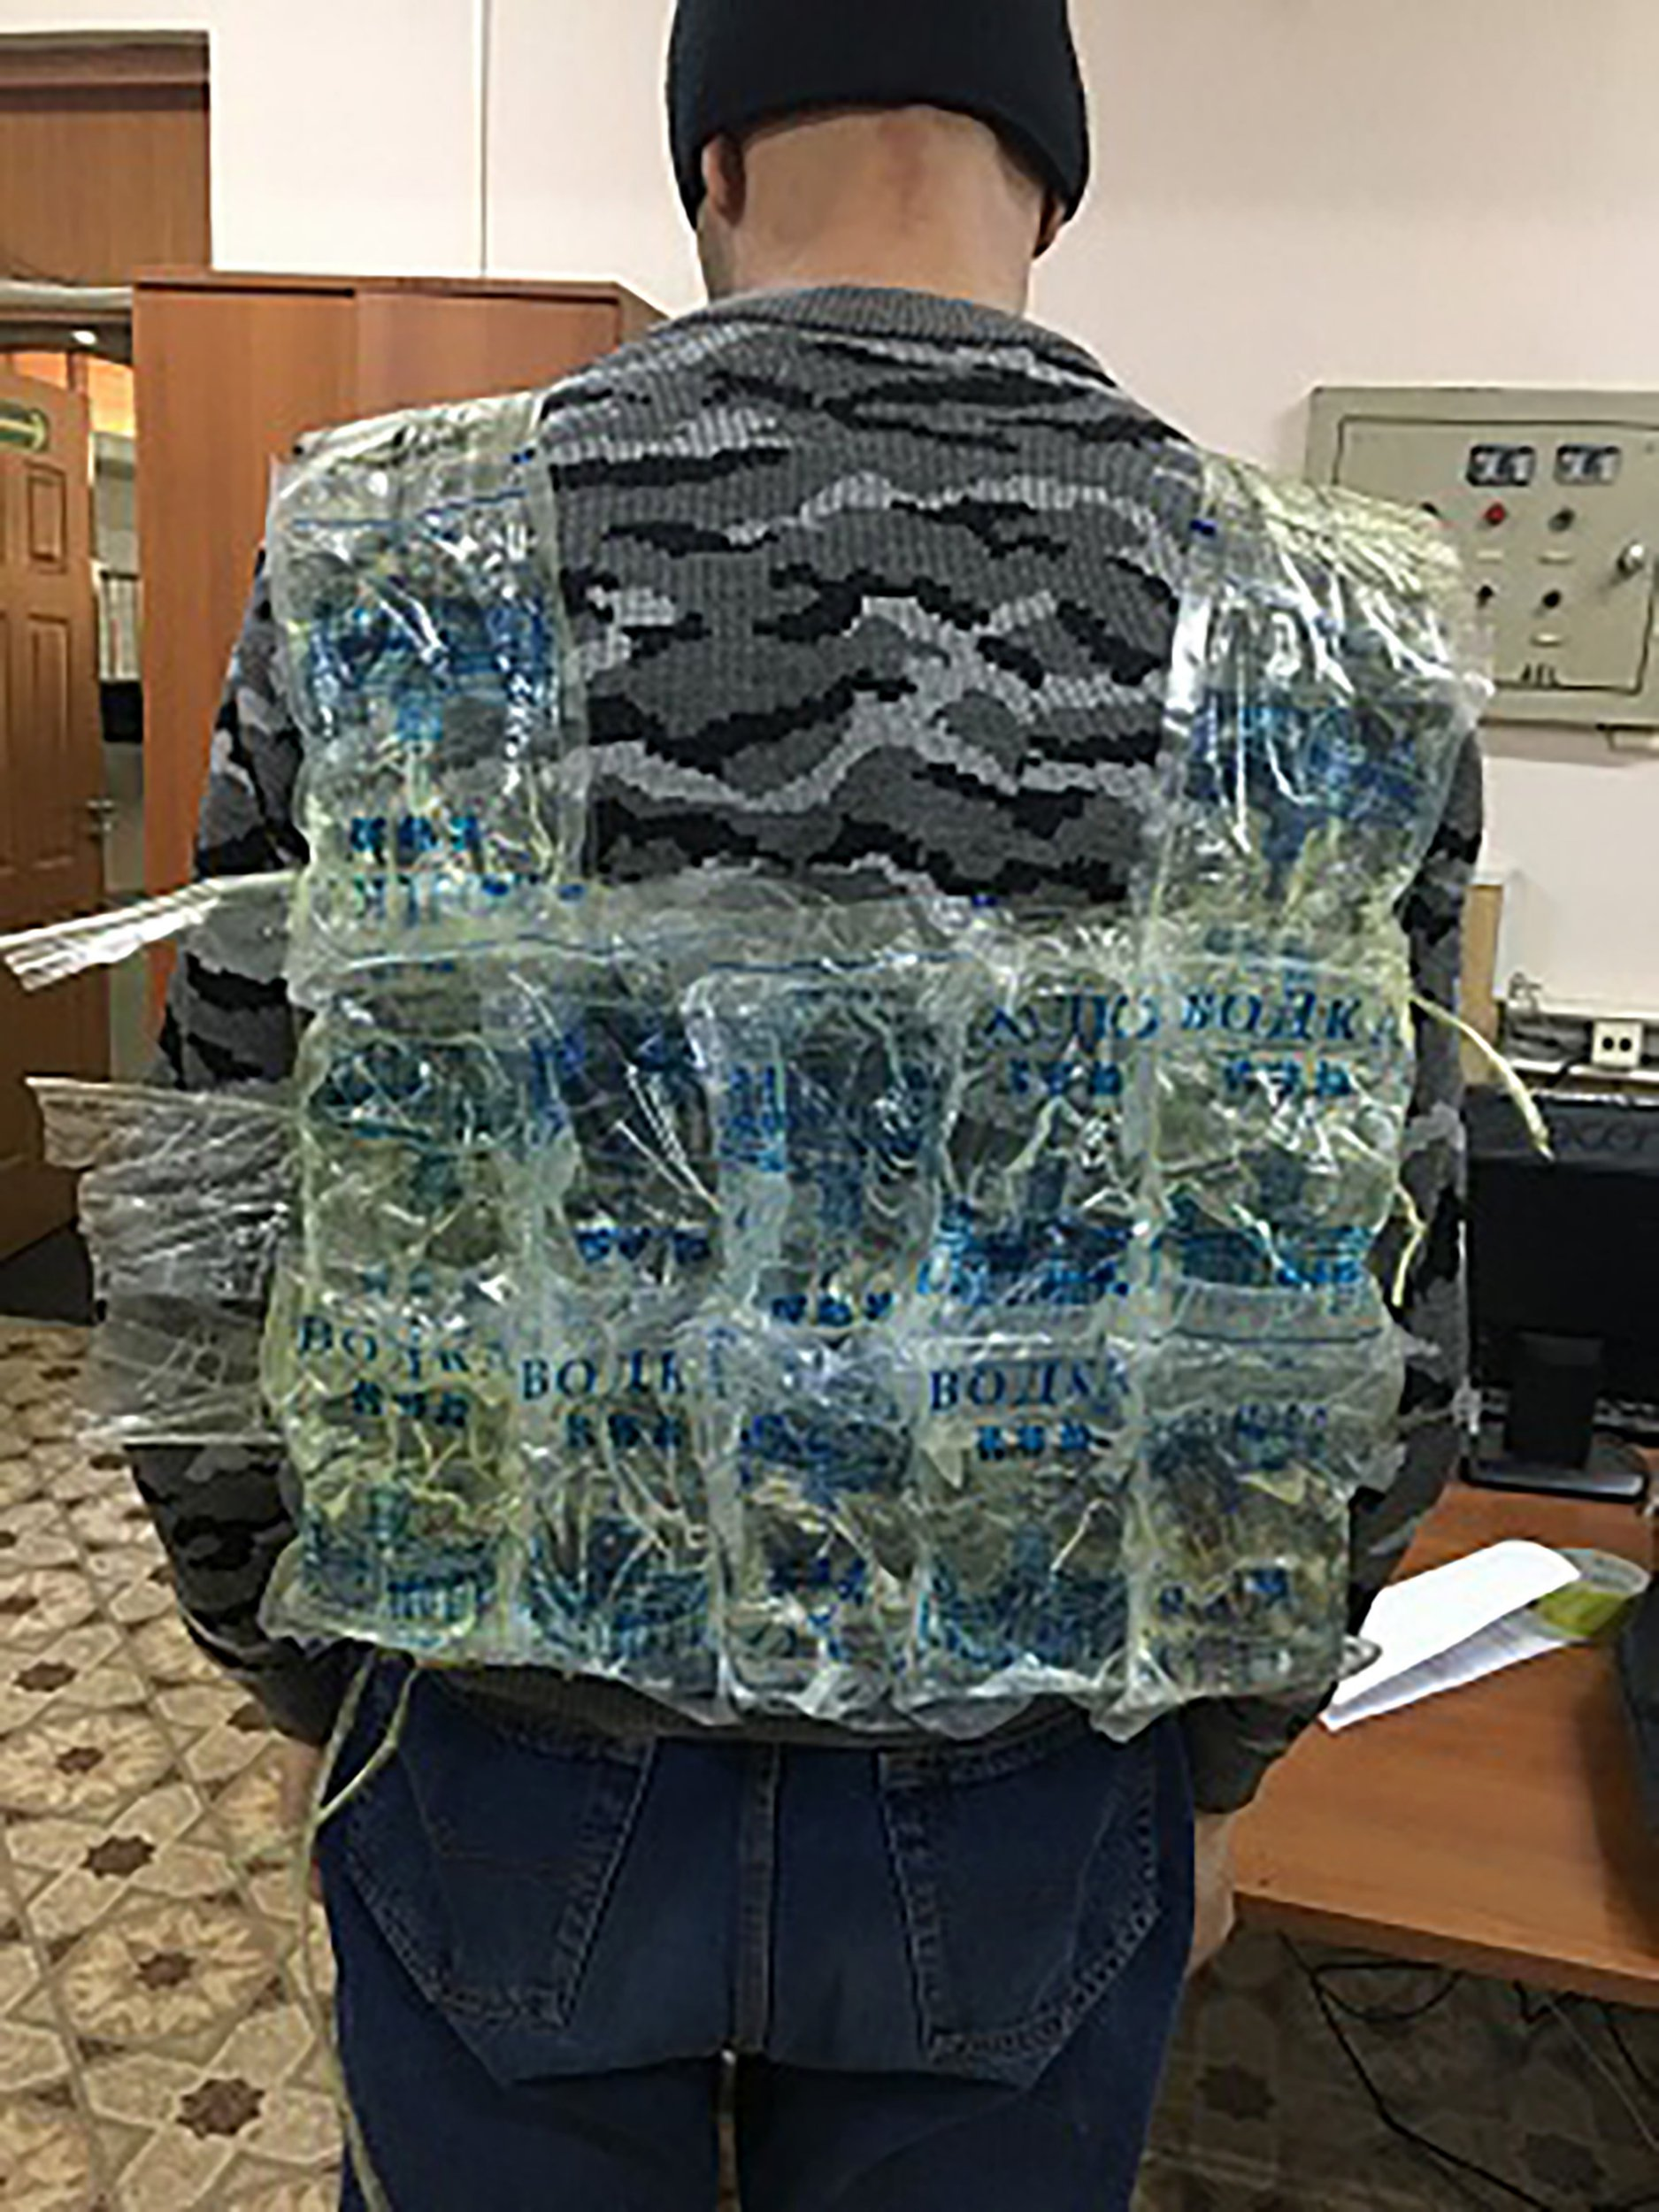 """Pic shows: Tourist with the belt of Chinese vodka Customs officers seized a smuggler who was trying to cross a border wearing a vest made out of 24 plastic bags full of cheap vodka. The man, whose name has not been released, was trying to cross into south-eastern Russia's Zabaykalsky Krai region from China. He had taped together the soft plastic containers of Chinese-made vodka into a vest which he wore underneath his jacket. But customs officers immediately spotted the man's suspiciously bulky body and over-sized jacket and pulled him over for a search. They asked him if he had anything to declare but the man tried to brazen it out and told them that he did not. The man was asked to open his jacket - revealing the 12 litres of smuggled booze in his crude homemade vest. He then told the customs officers that he was bringing the vodka to a party for his brother???s birthday and a wedding. He now faces charges of failing to declare contraband goods to customs officers in a bid to avoid paying excise duties. Netizen ???albo1??? said: """"Did he really have to do so much for this sh*t? He could have made better booze on his own."""" While another online commentator, ???Uynachalnica???, added: """"He should have done a better job of hiding it under his jacket."""" Zabaykalsky Krai has an extensive 998-kilometre (620-mile) border with China."""